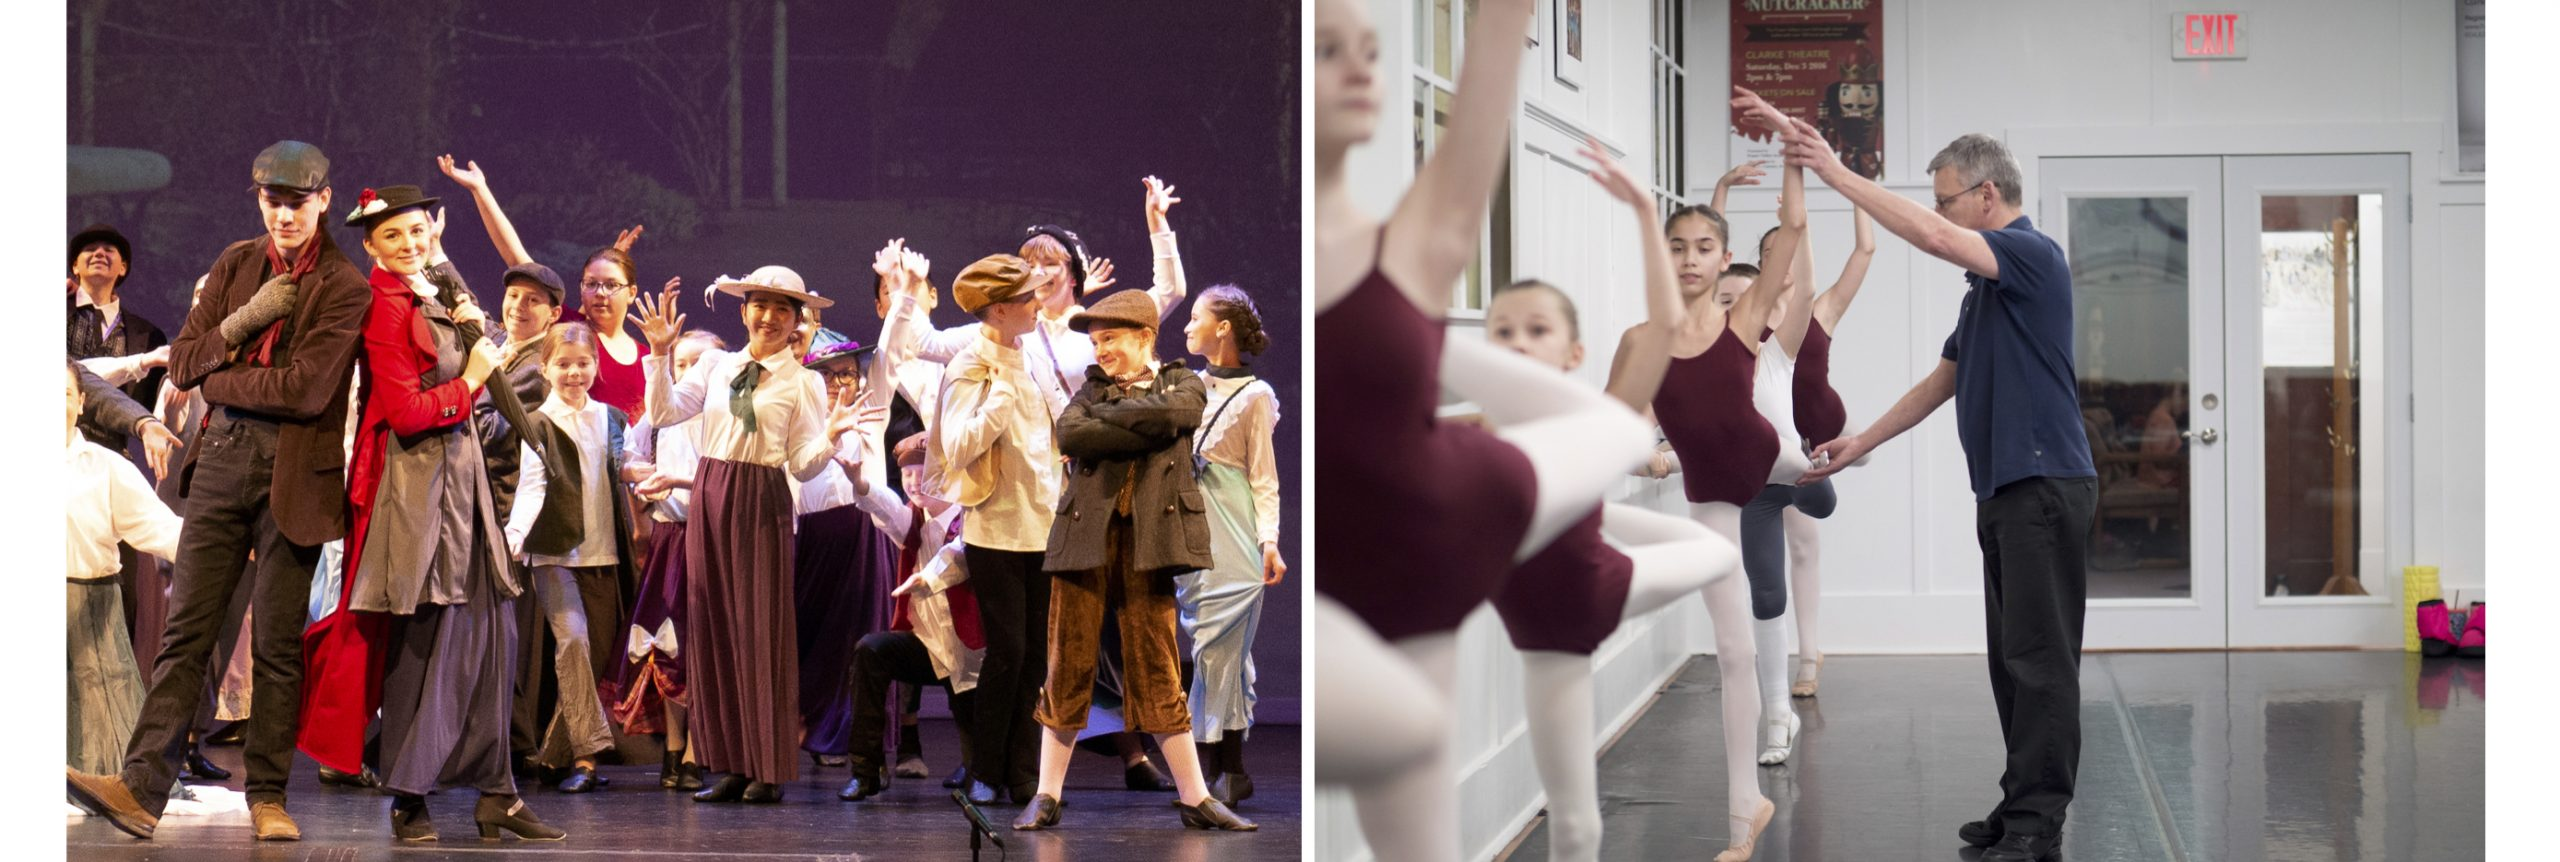 About us - Classical ballet, contemporary dance and musical theatre.